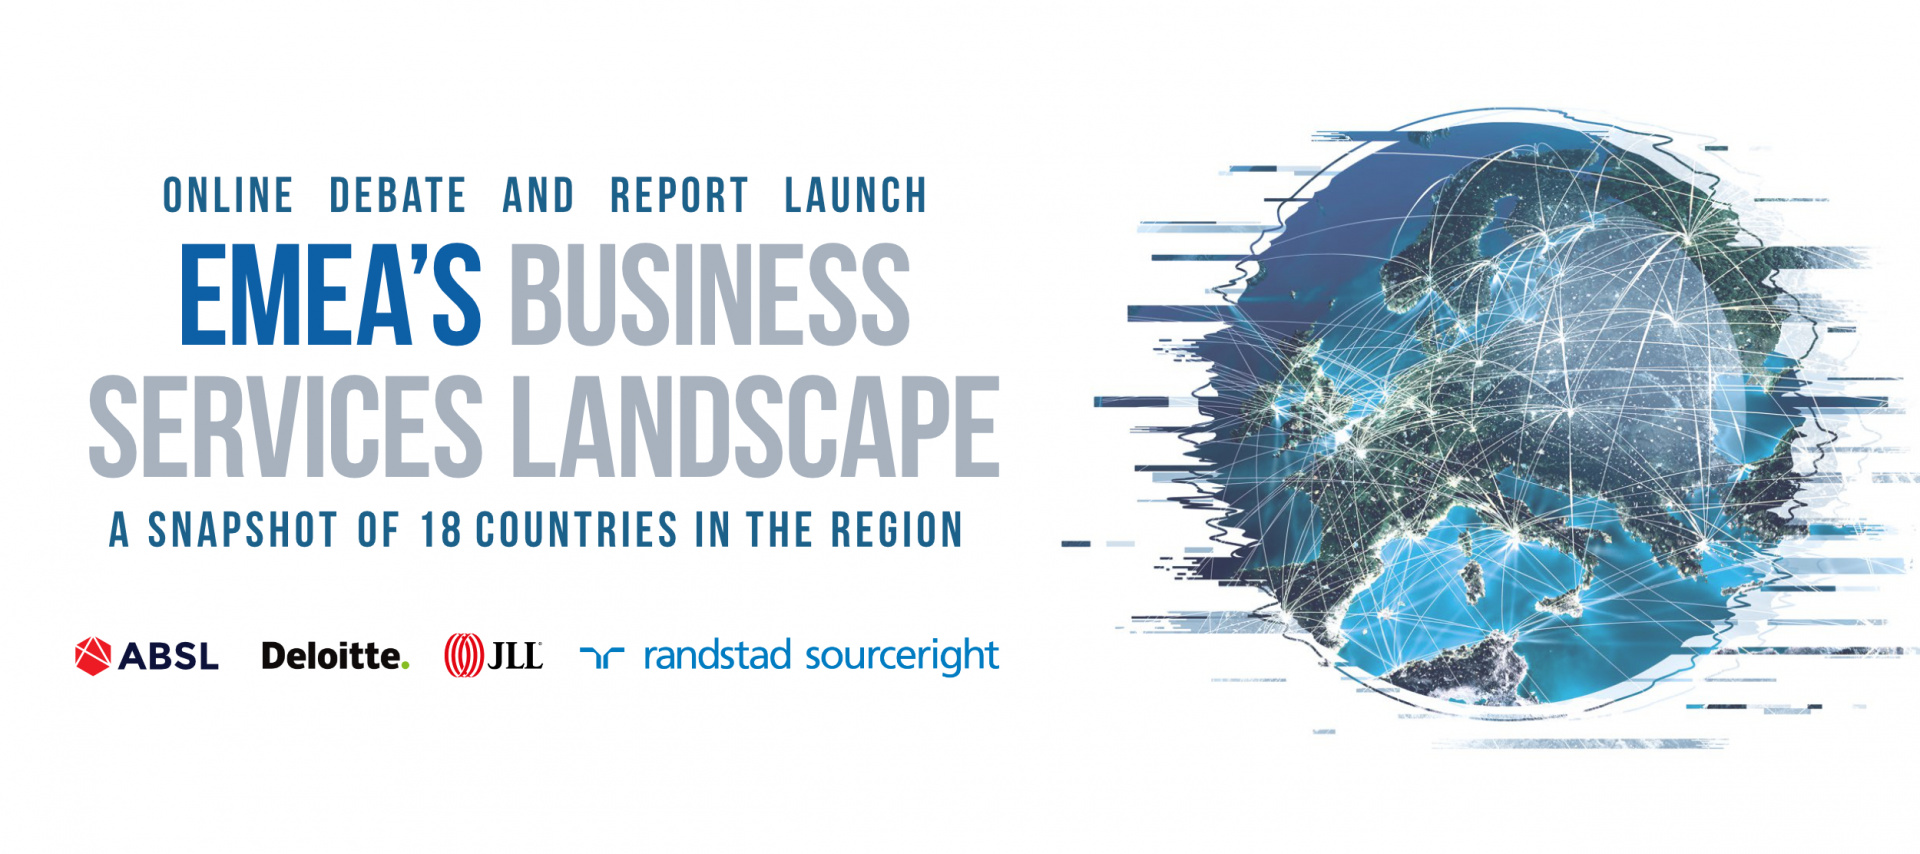 EMEA's Business Services Landscape